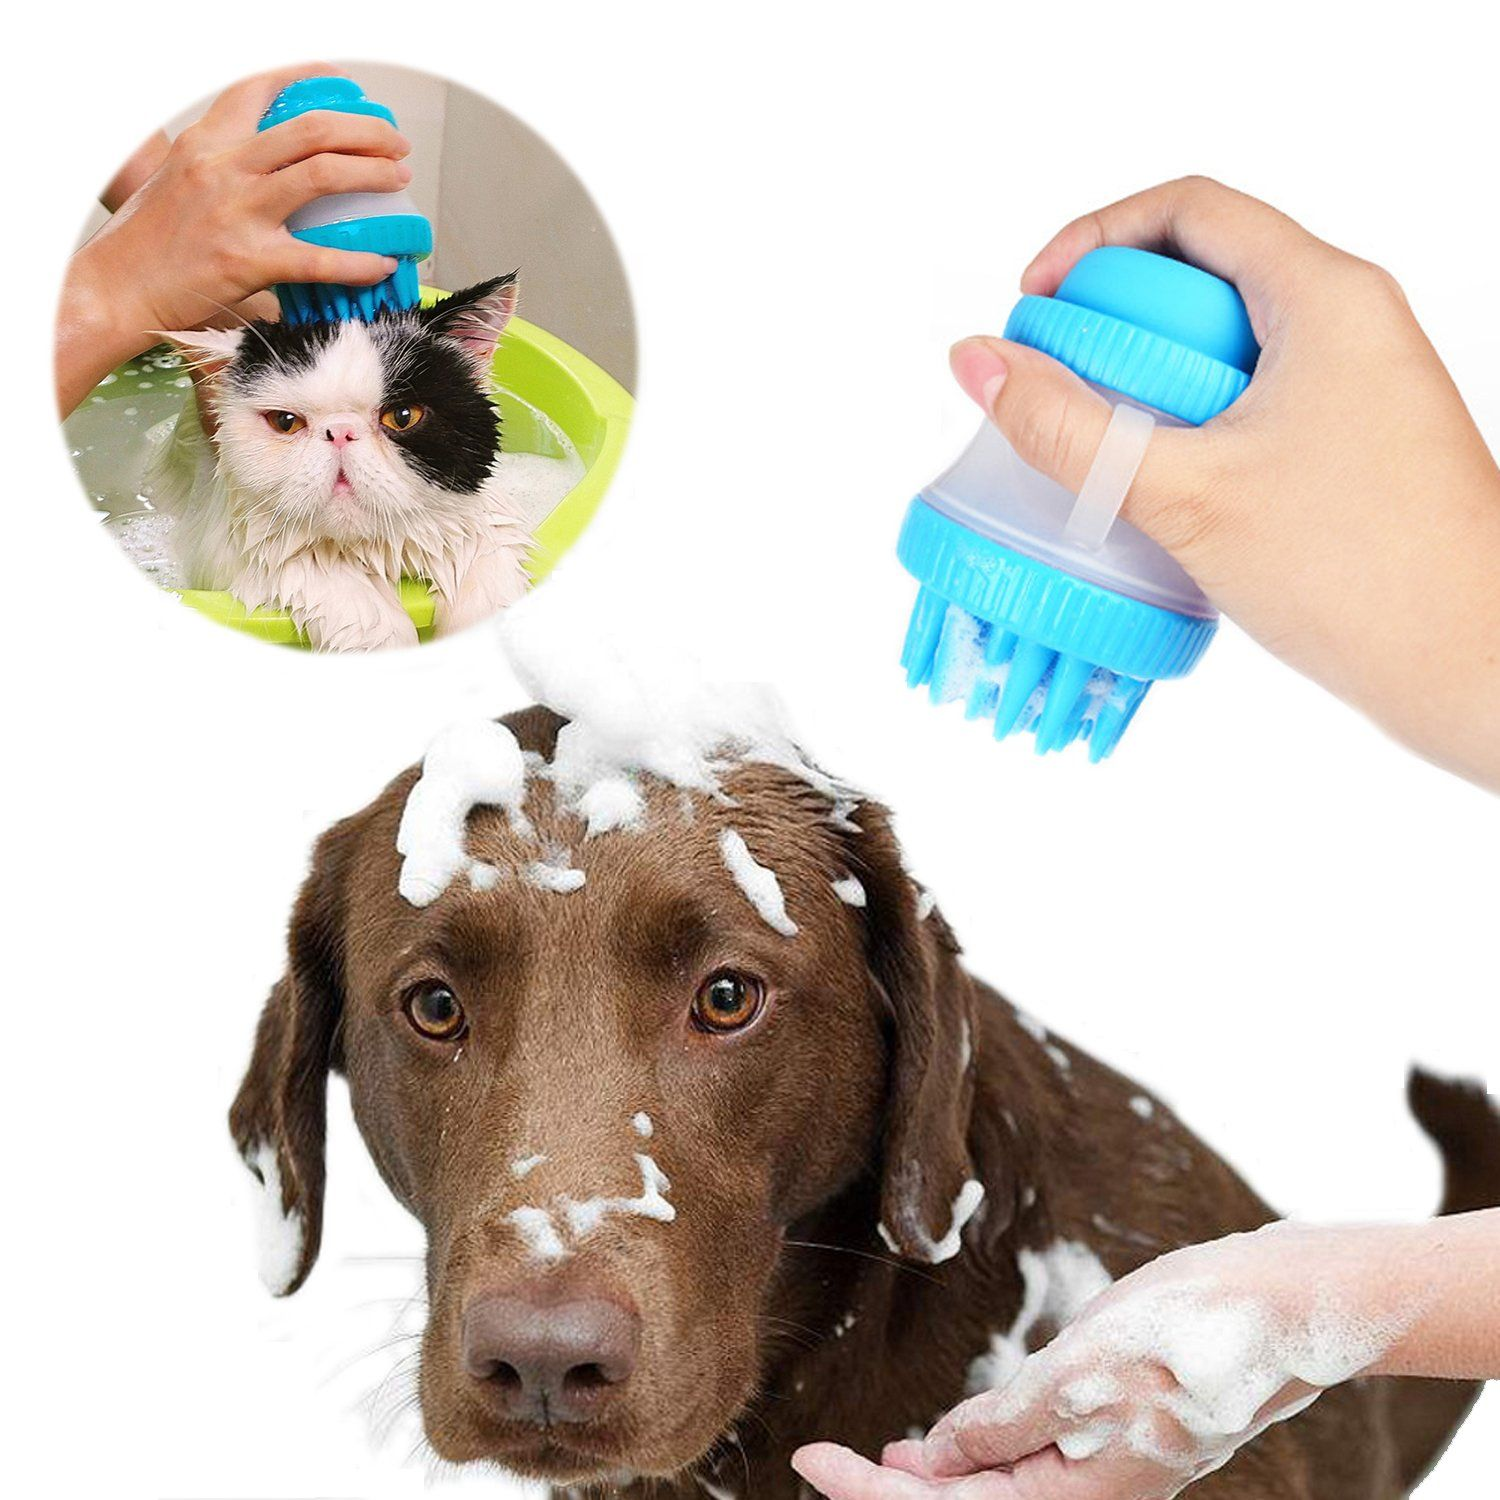 Gelis Silicone Pet Bath Tool With Shampoo Dispensing